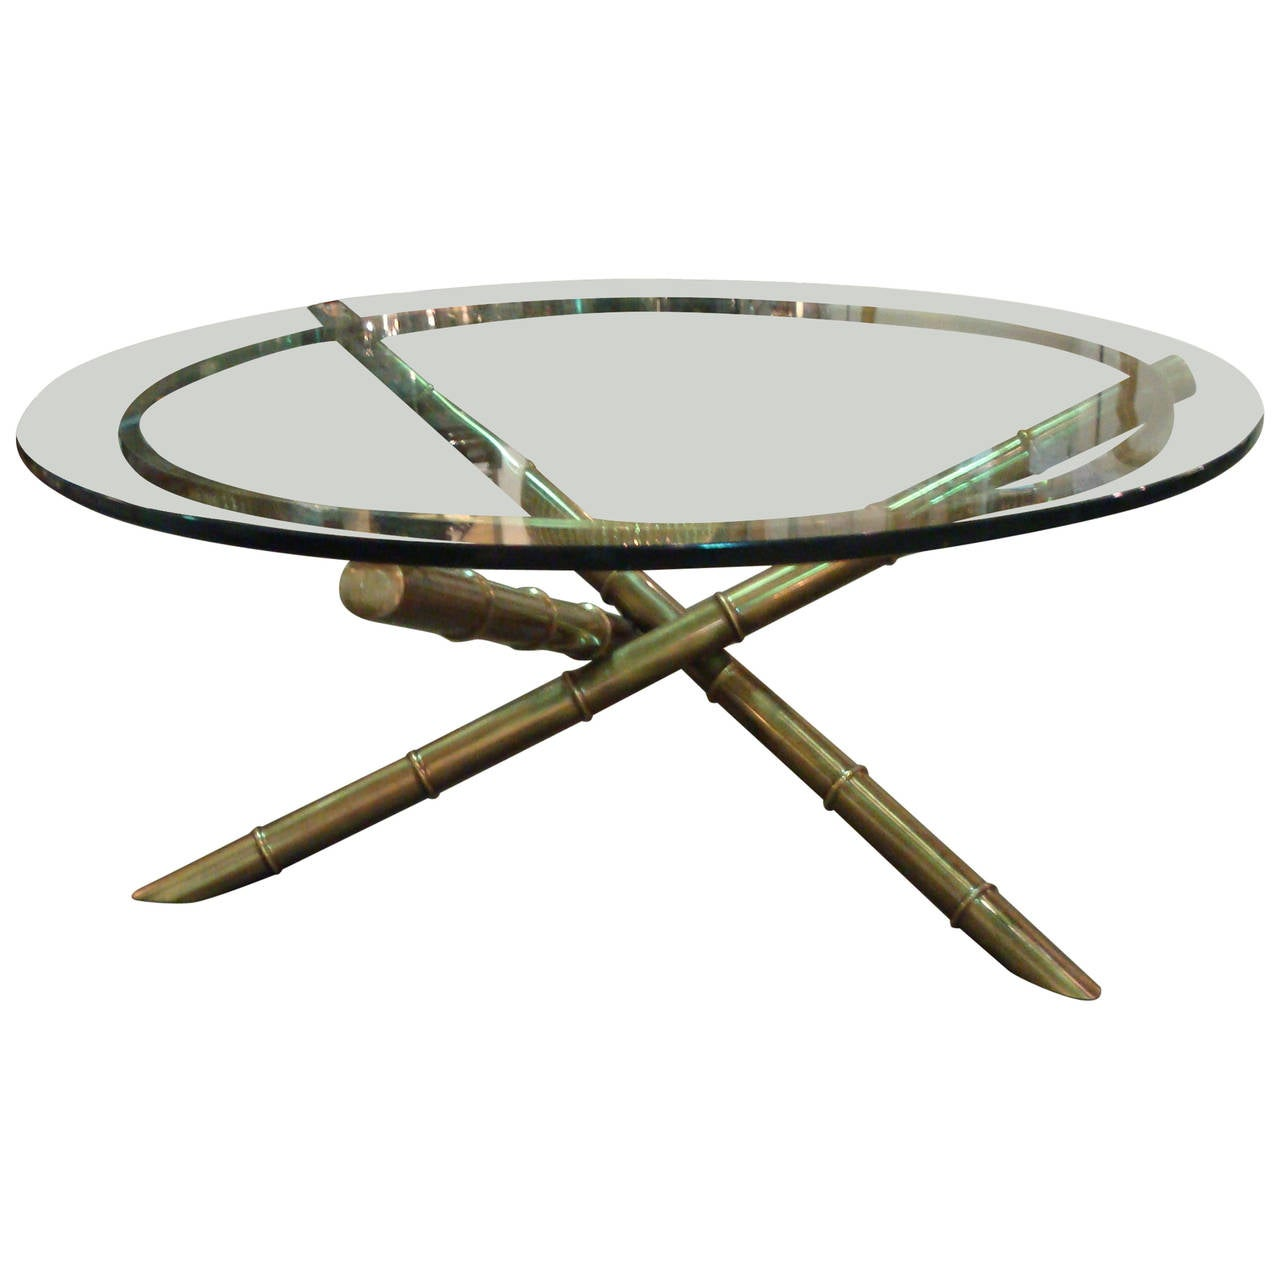 Italian Gold Gilt Iron And Glass Faux Bamboo Metal Square: Bamboo Metal Coffee Table For Sale At 1stdibs